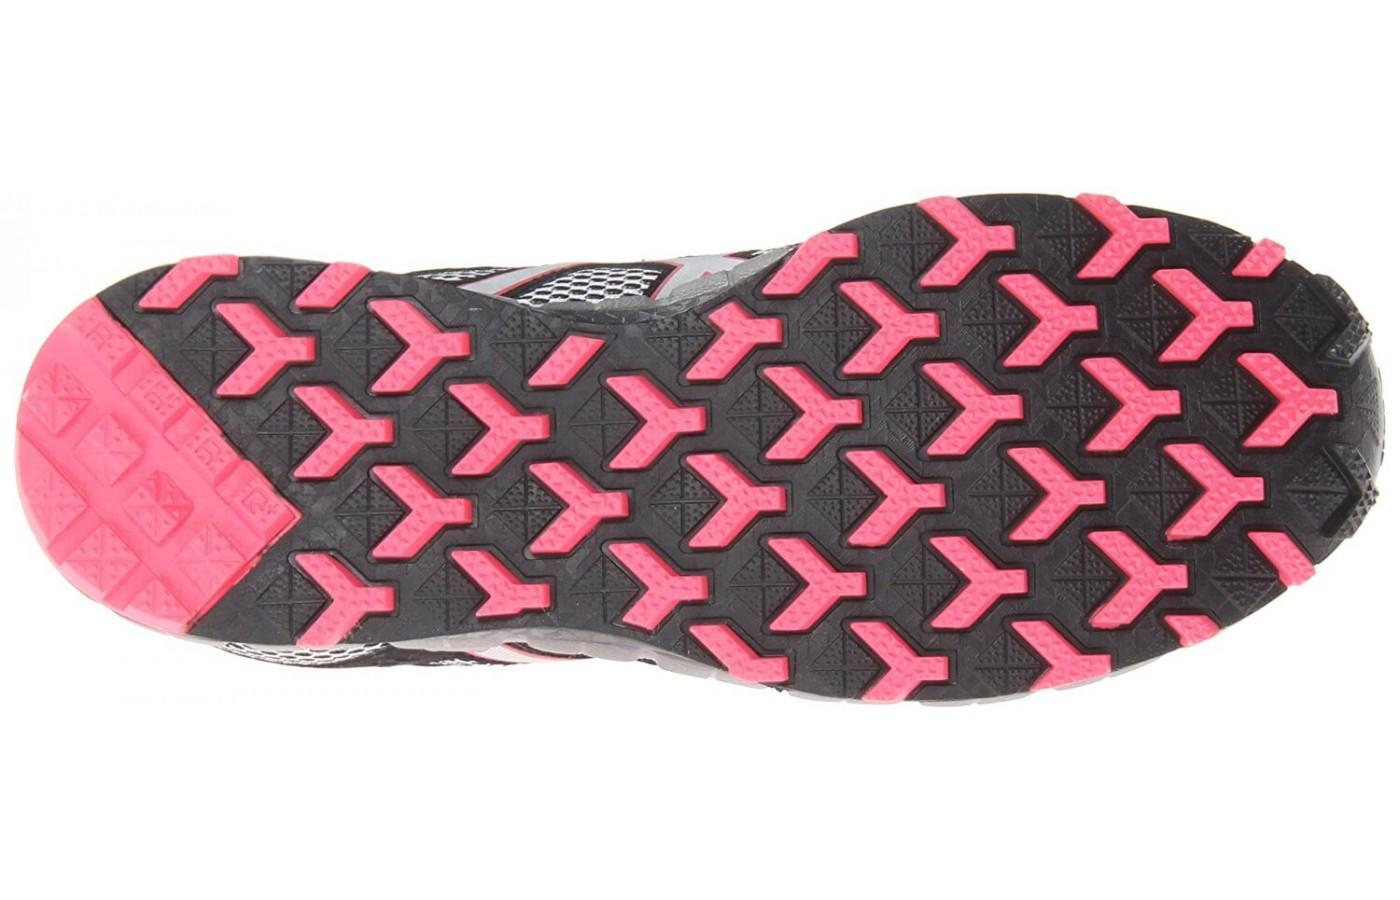 the Asics Gel FujiTrainer 3 has reverse geometric lugs for traction on hills and trails